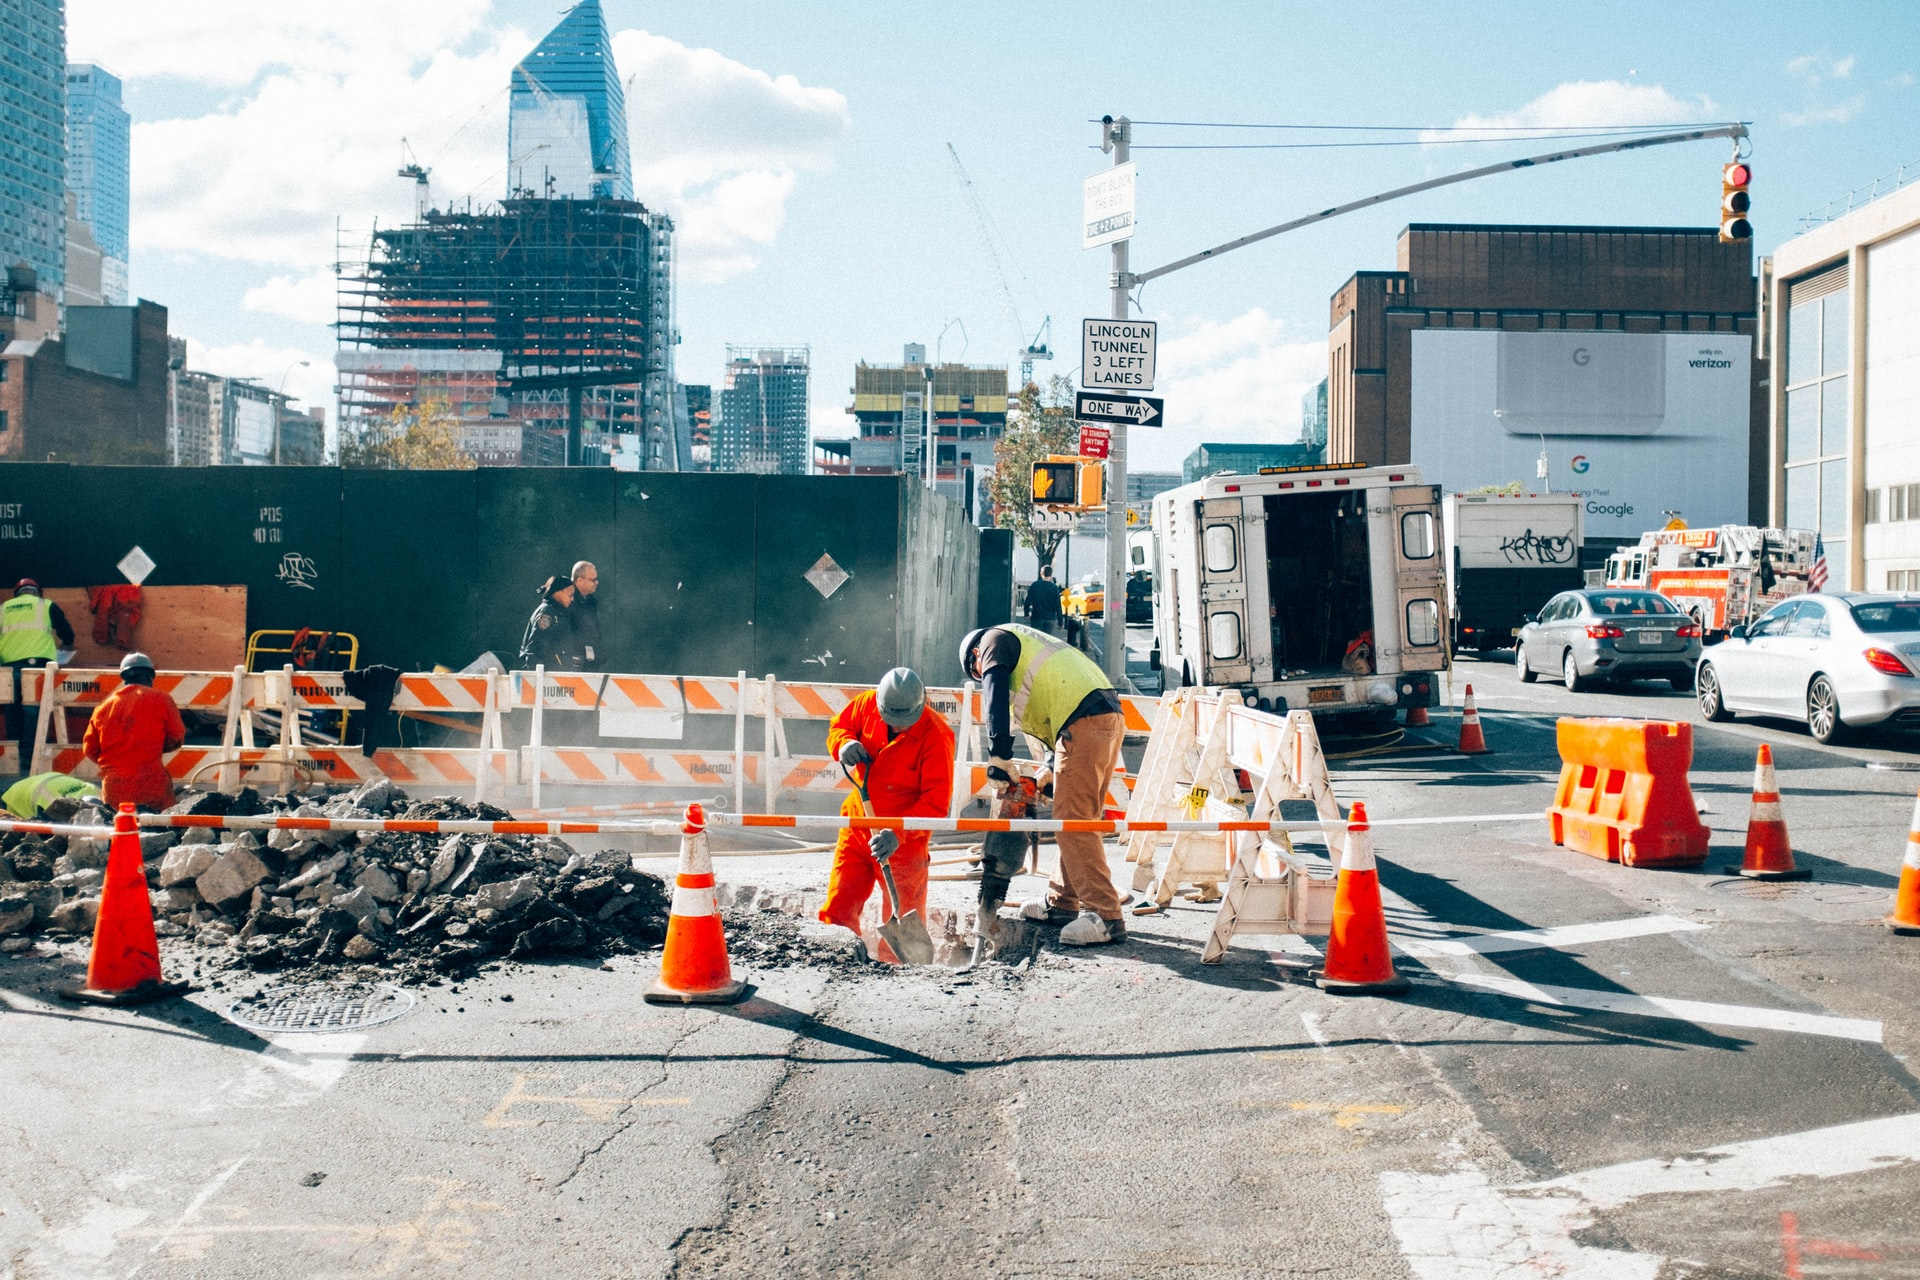 $139M in infrastructure funding up for grabs by Western Sydney councils